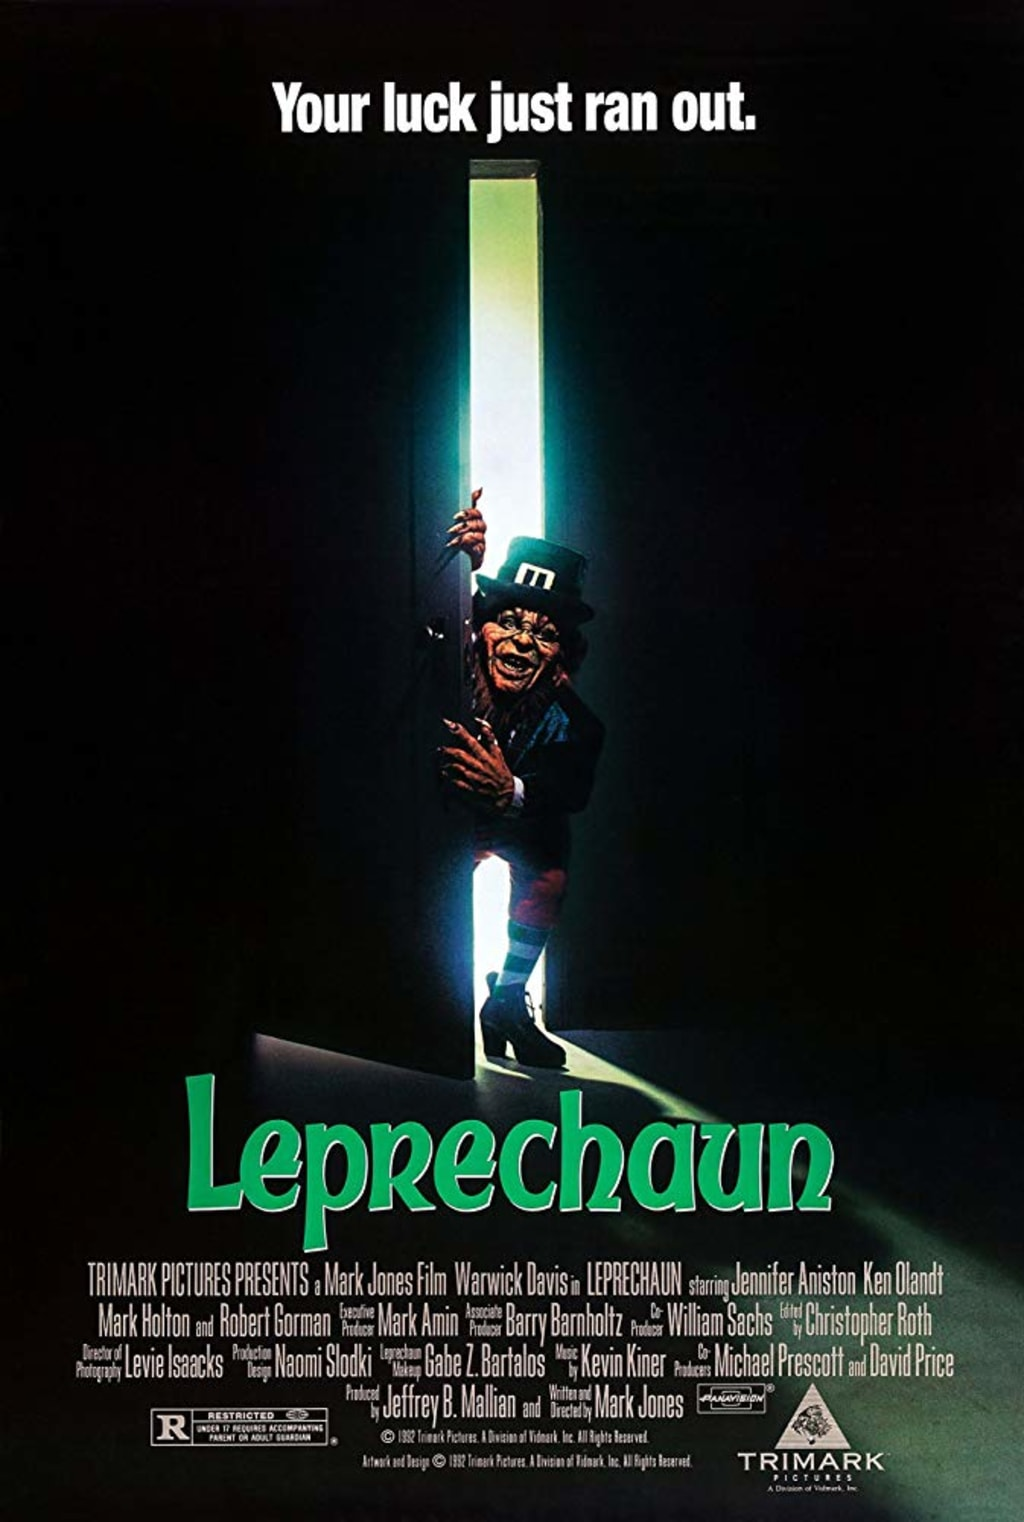 Reed Alexander's Horror Review of 'Leprechaun' (1993)